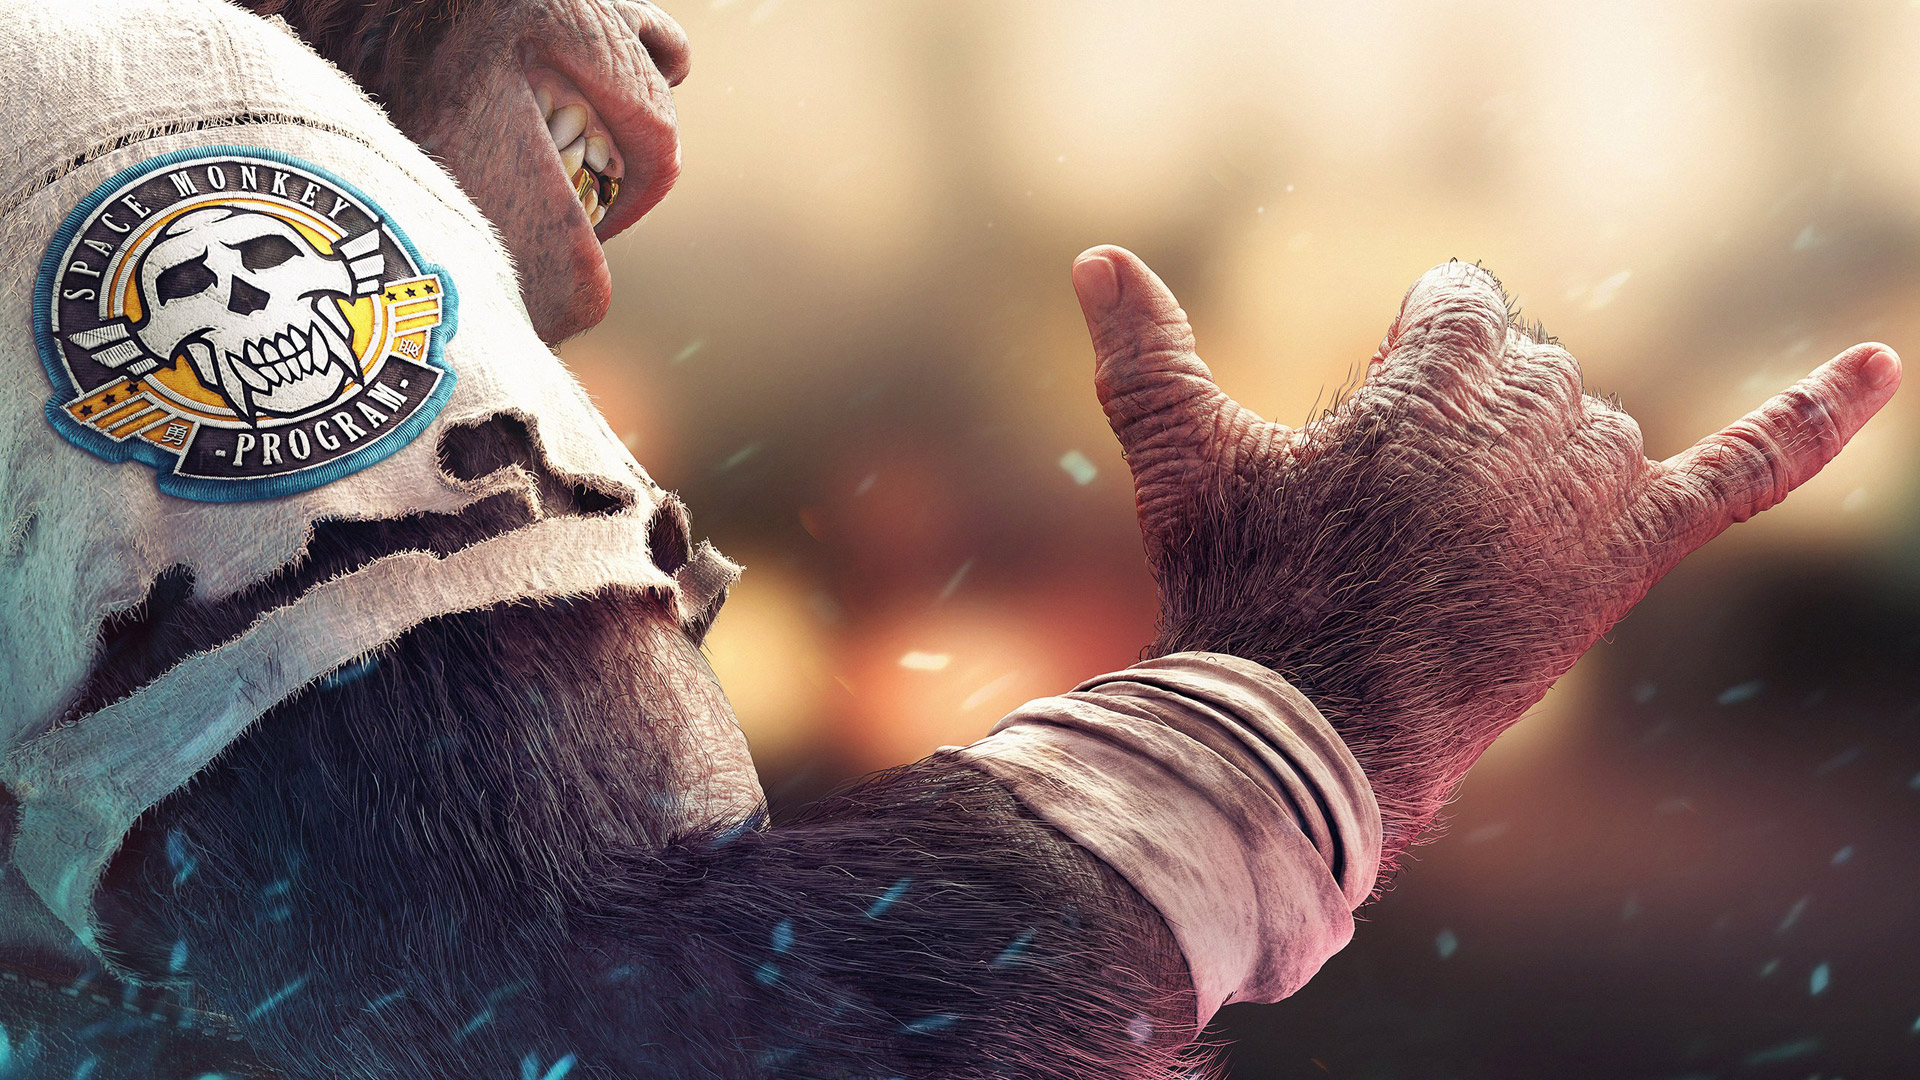 Free Beyond Good and Evil 2 Wallpaper in 1920x1080